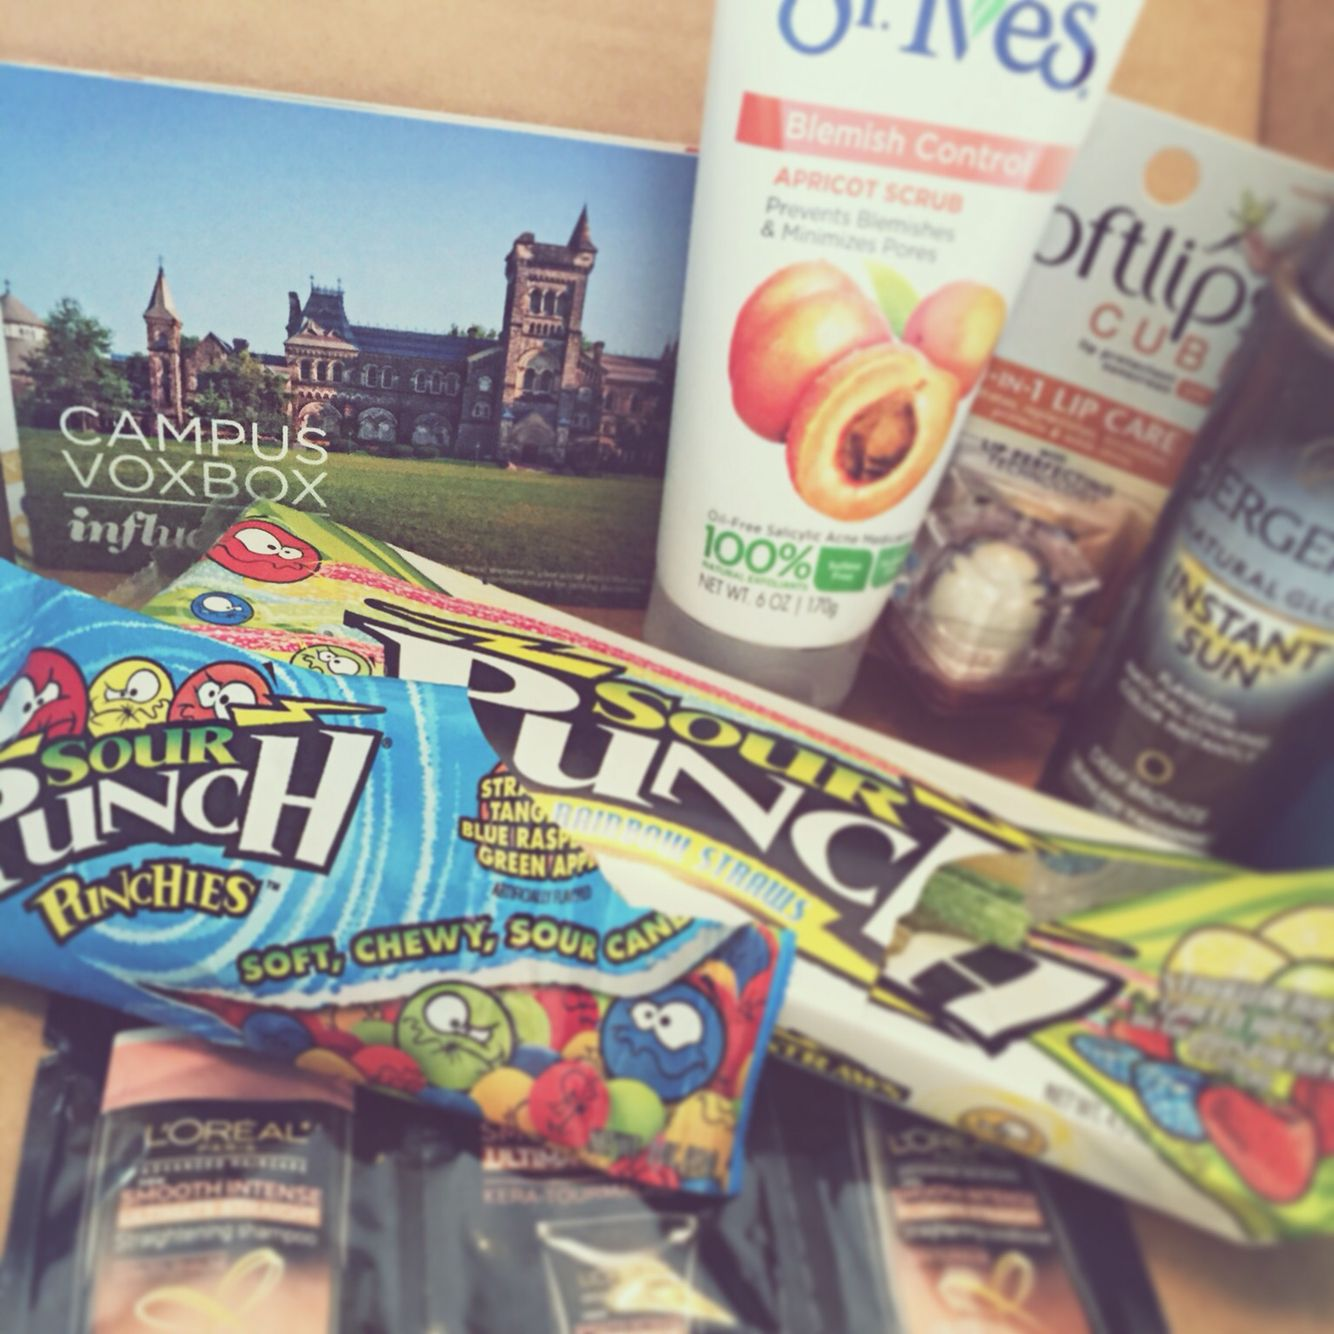 #CampusVoxBox contents! Jergens Natural Glow Instant Sun Sunless Tanning Mousse, St. Ives Blemish Control Apricot Scrub, L'Oreal Paris Asvanced Straight System, Softlips Cube, Sour Punch Rainbow Straws, and Sour Punch Punchies